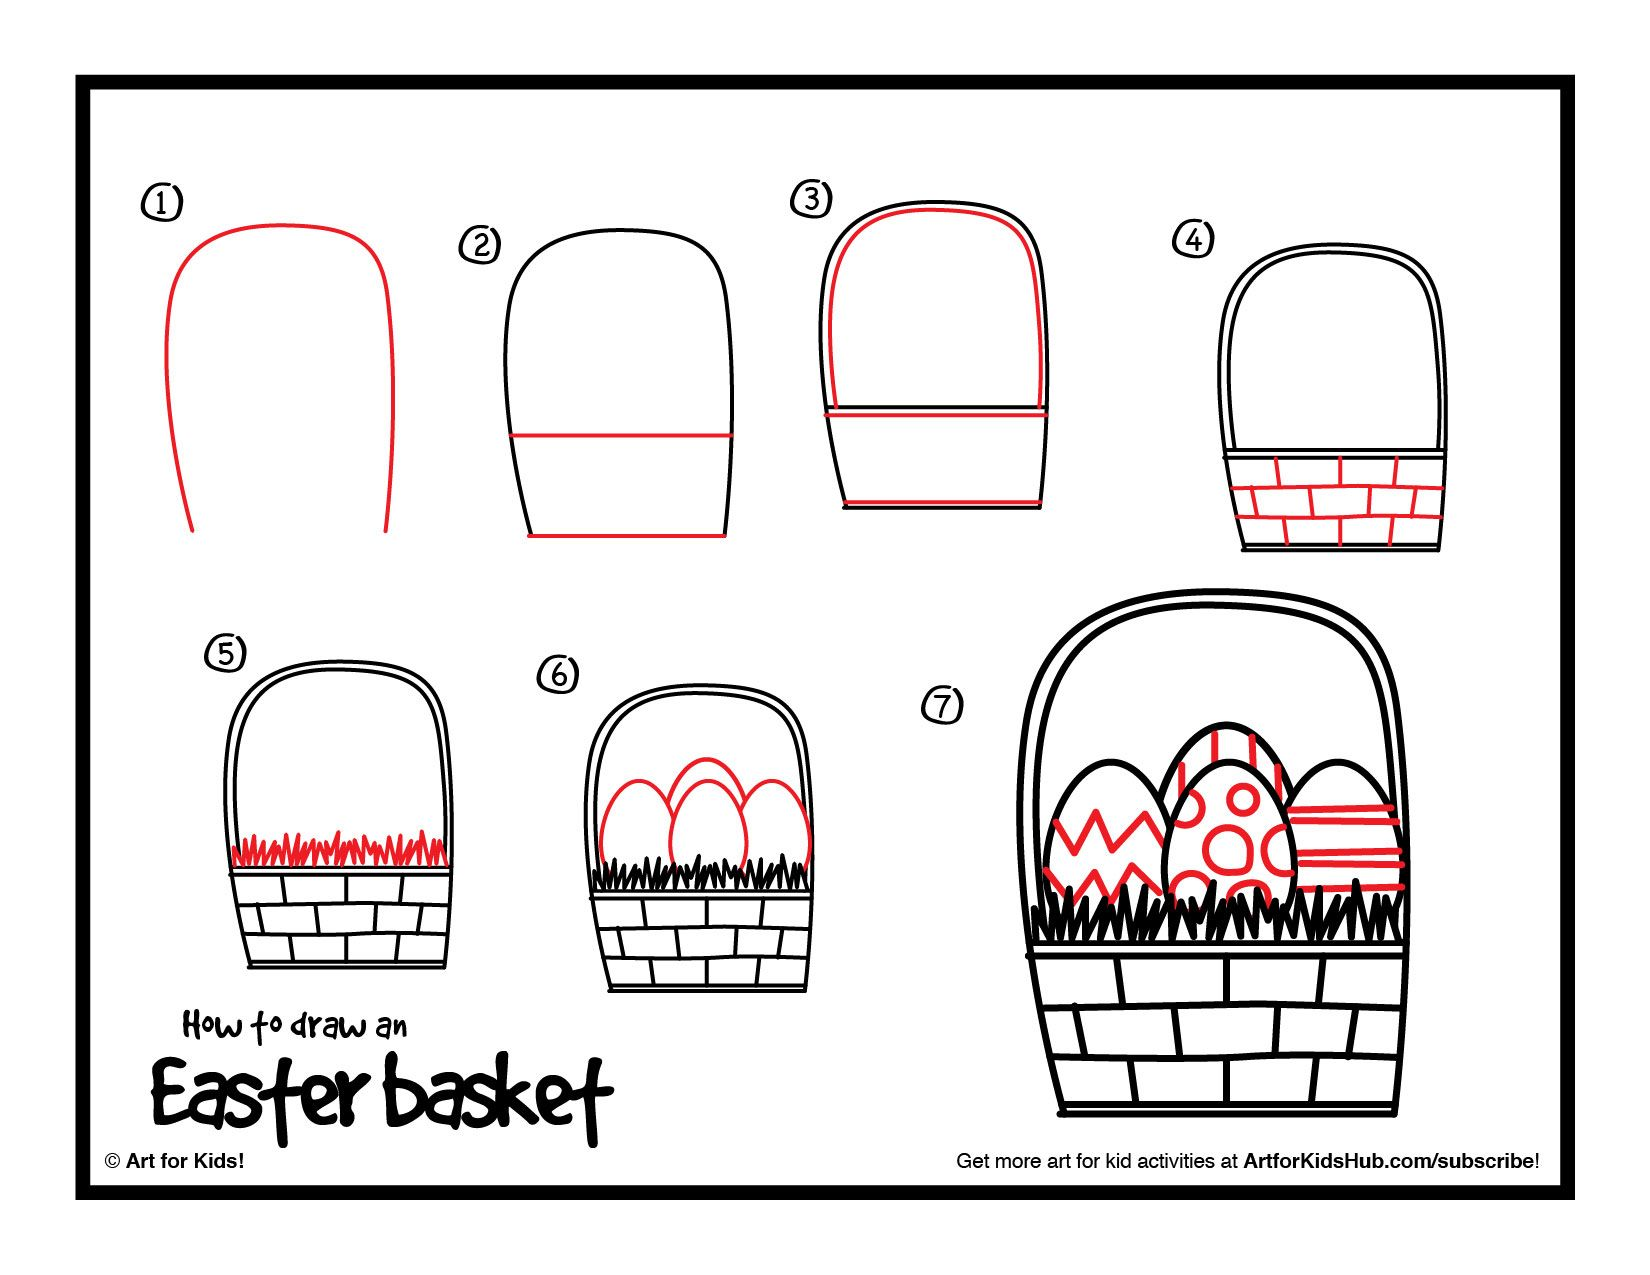 How To Draw An Easter Basket - Art For Kids Hub - | Basket ...